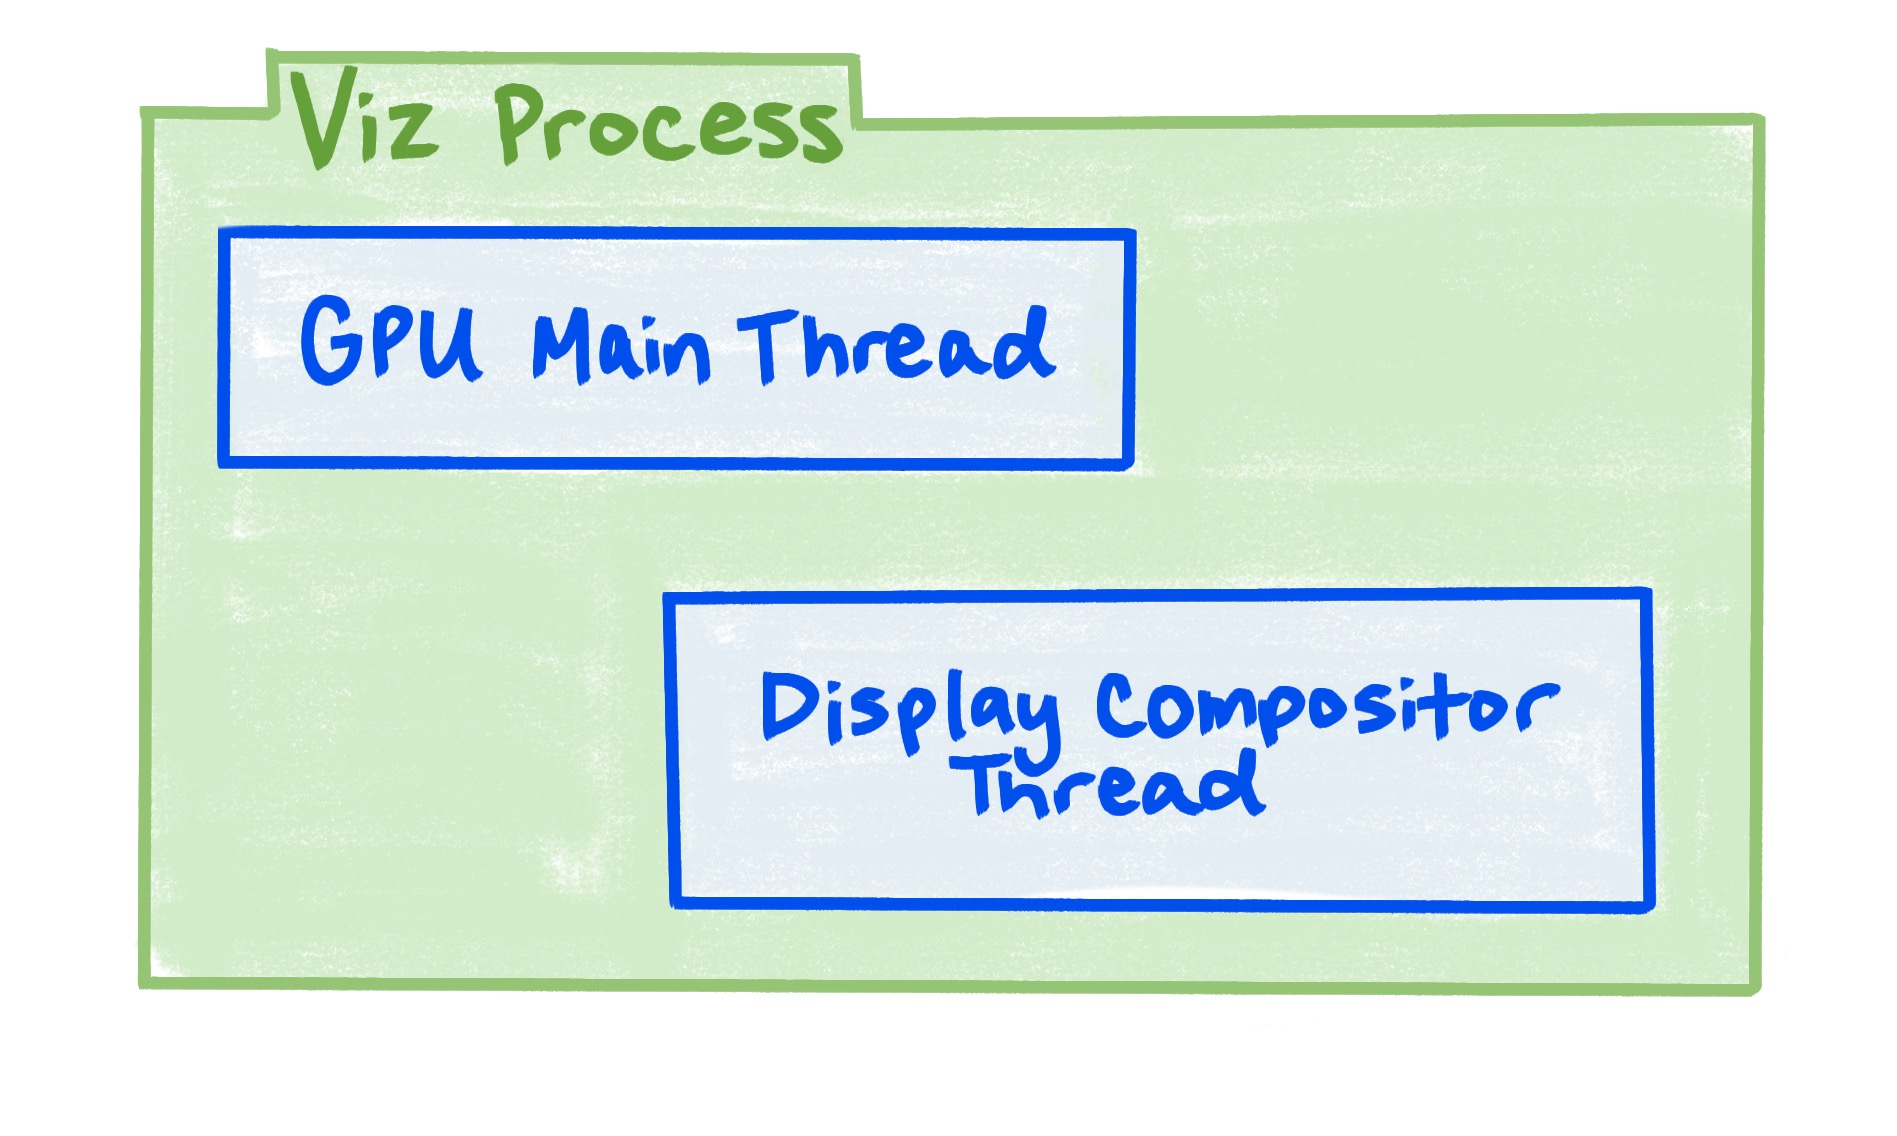 A diagram showing that the Viz process includes the GPU main thread, and the display compositor thread.